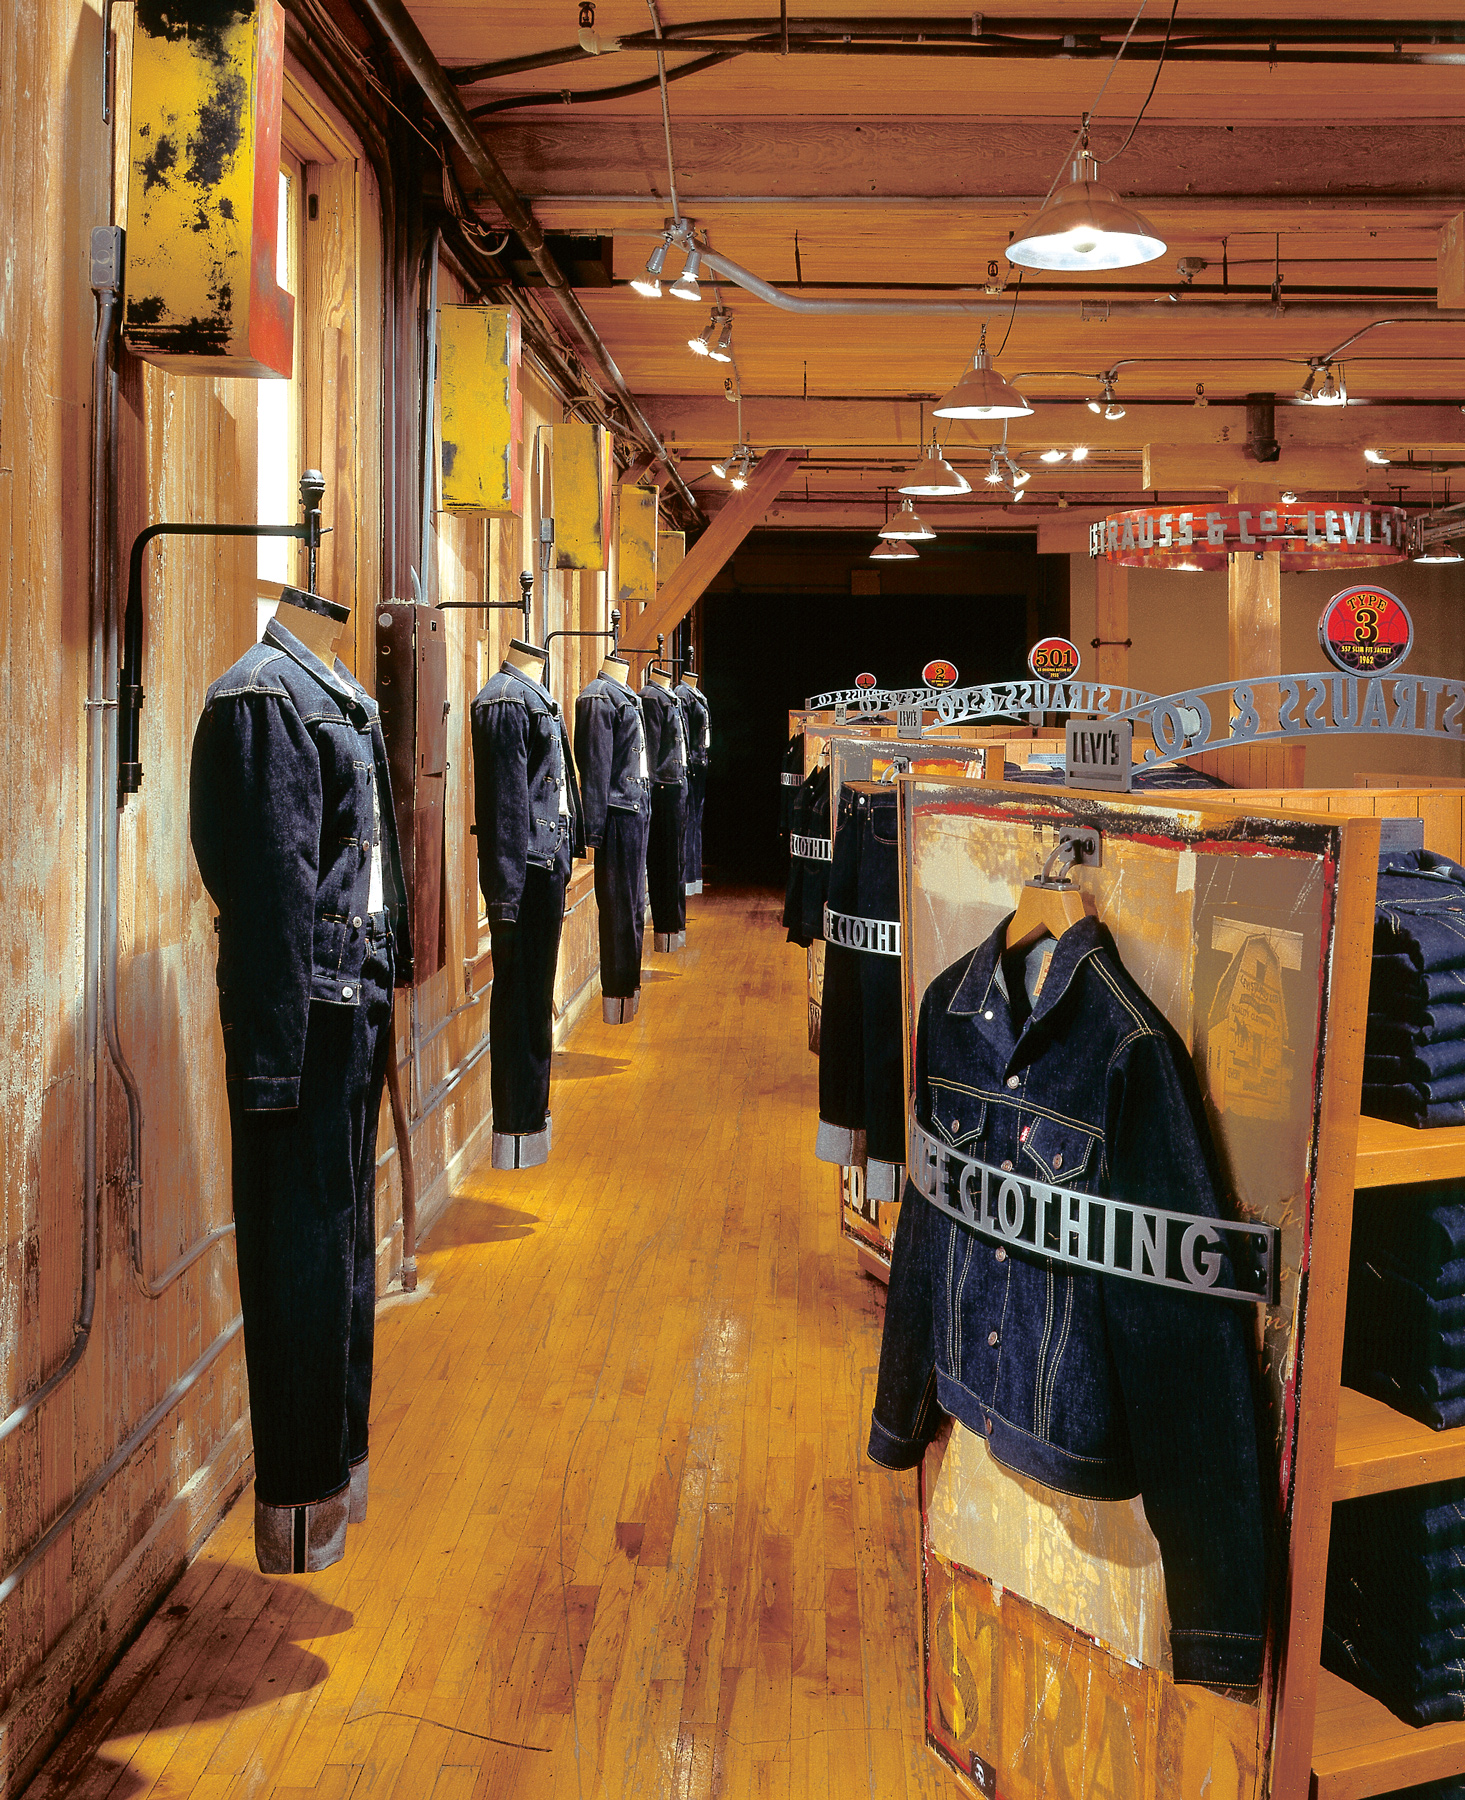 Levis retail store display with stunning black and white graphics and imagery and product shelves for denim.